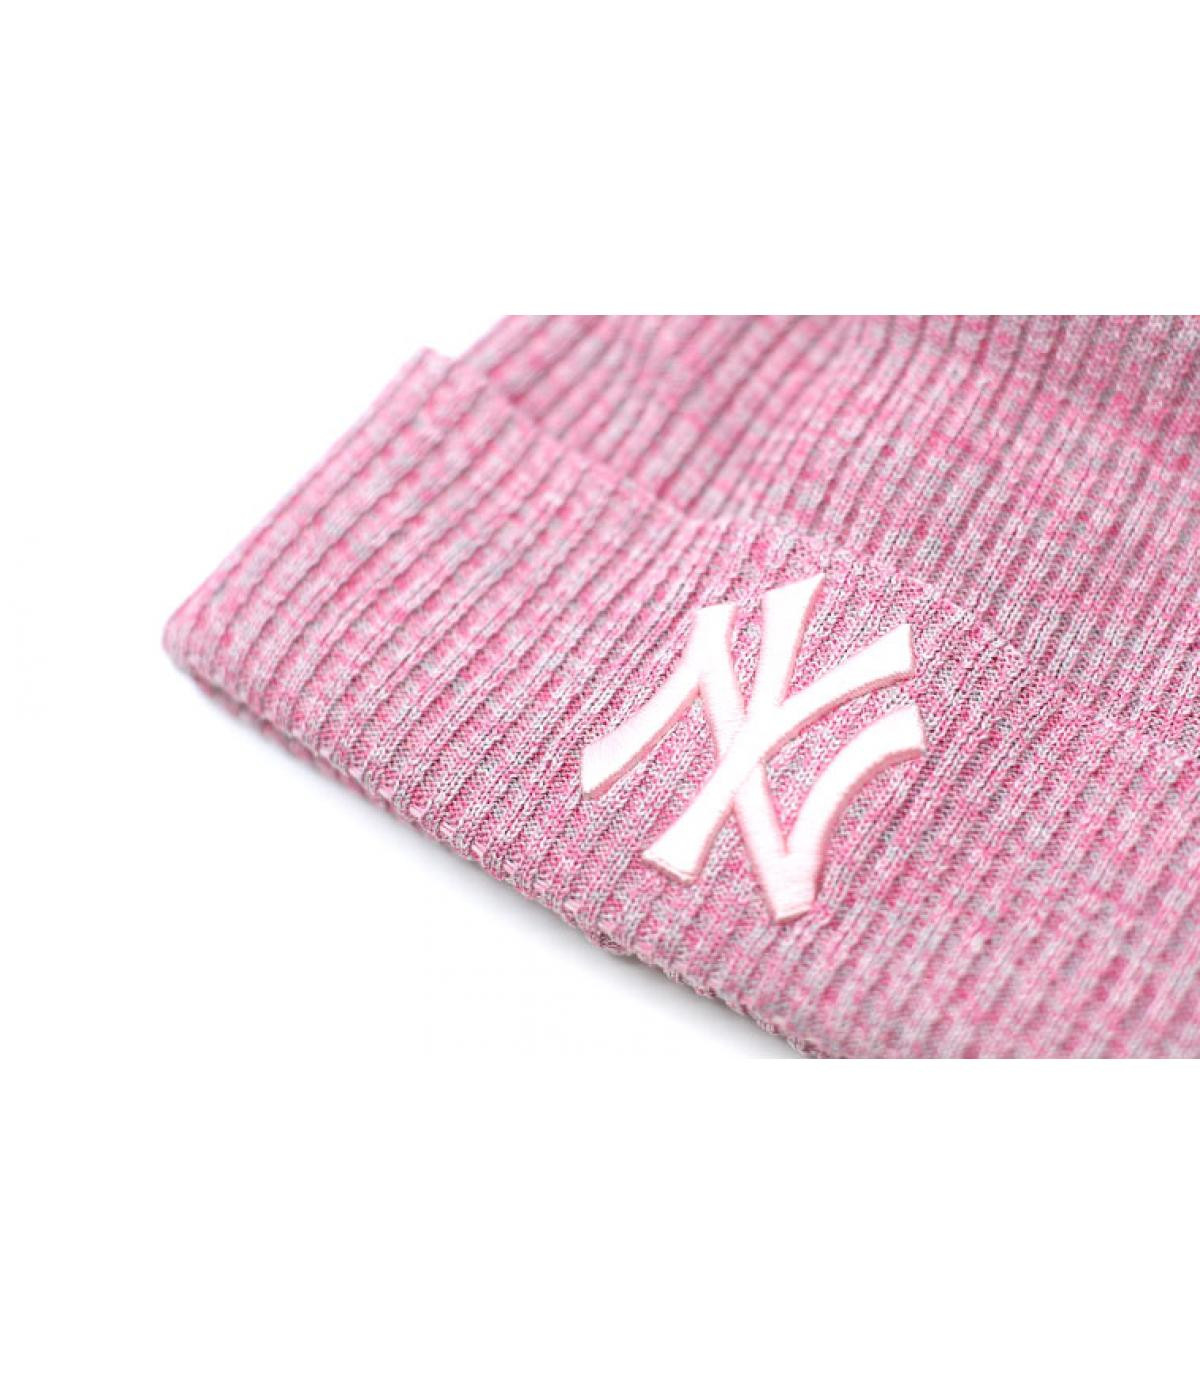 Détails Wmns NY Engineered Fit Knit pink - image 3